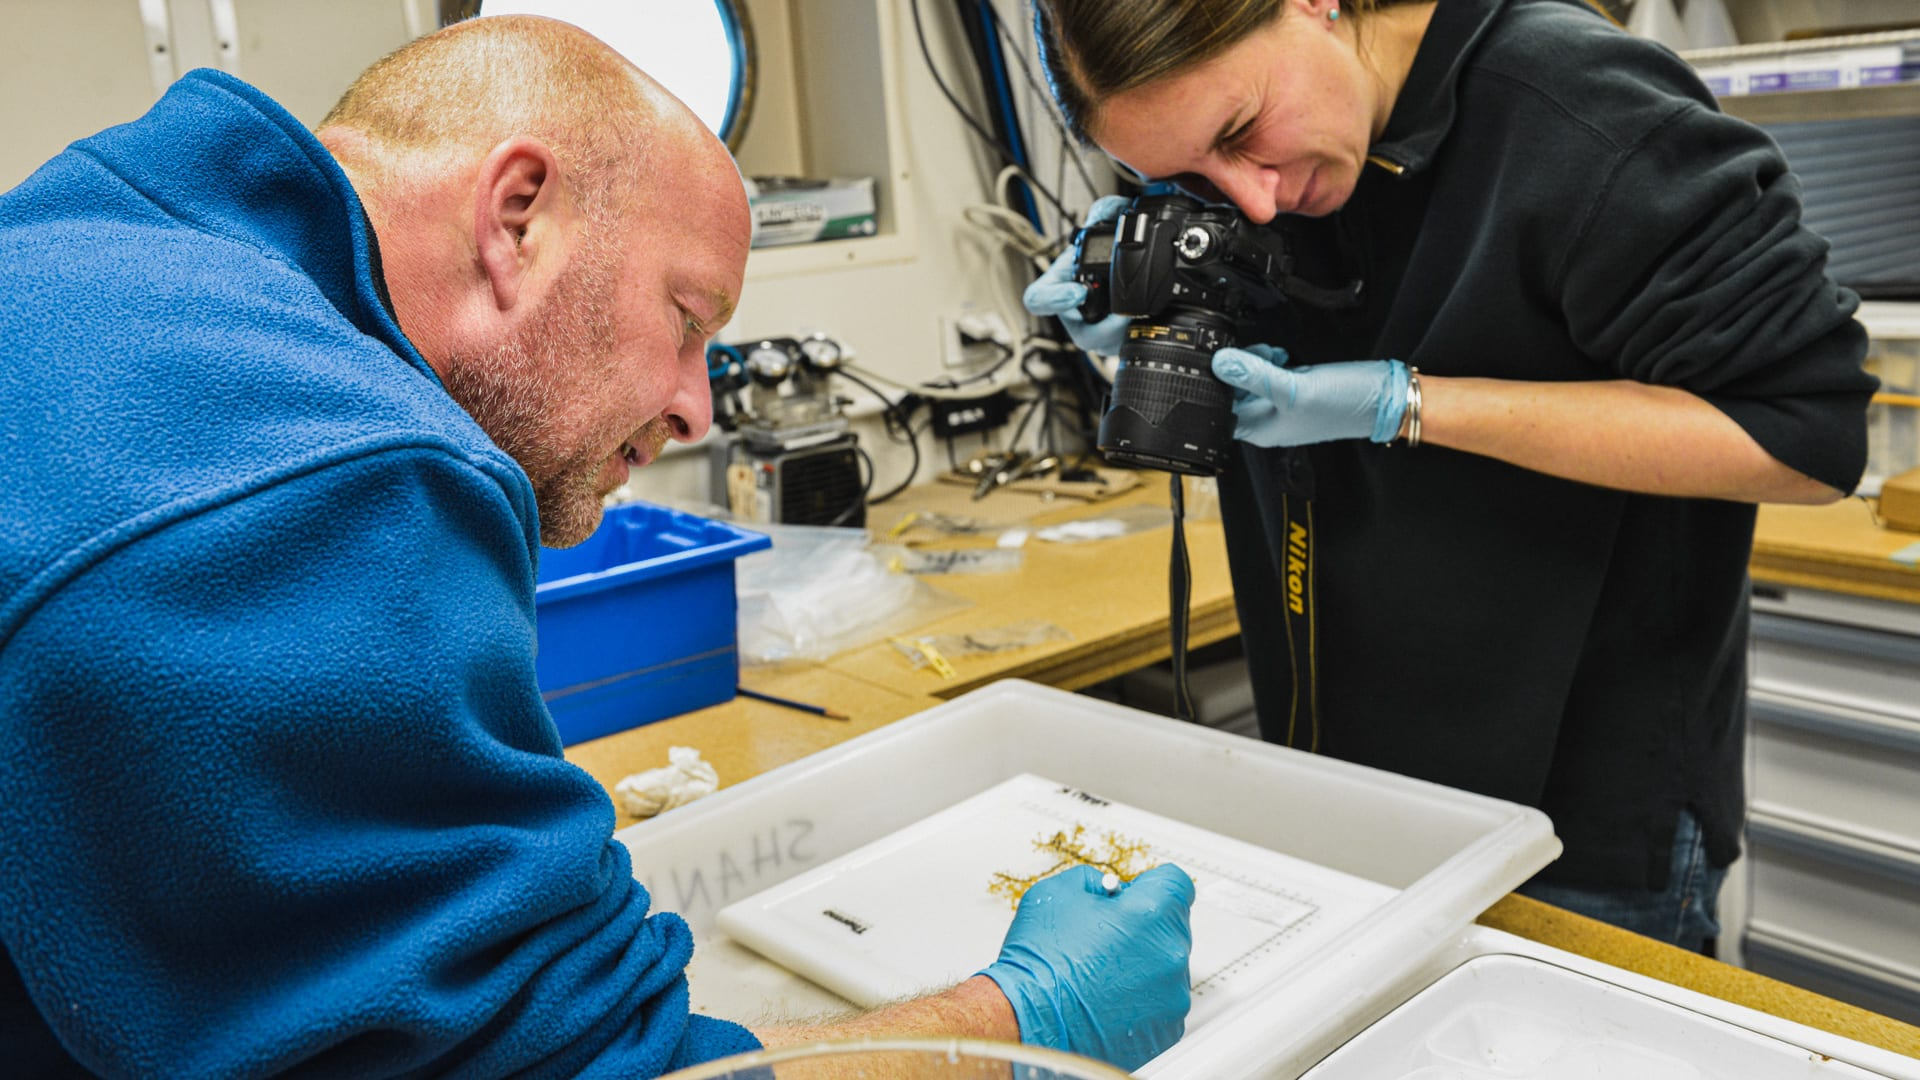 WHOI biologists Tim Shank and Taylor Heyl process coral samples to determine biodiversity in Atlantis Canyon, 100 miles from Woods Hole, Mass. (Photo by Ken Kostel, © Woods Hole Oceanographic Institution)